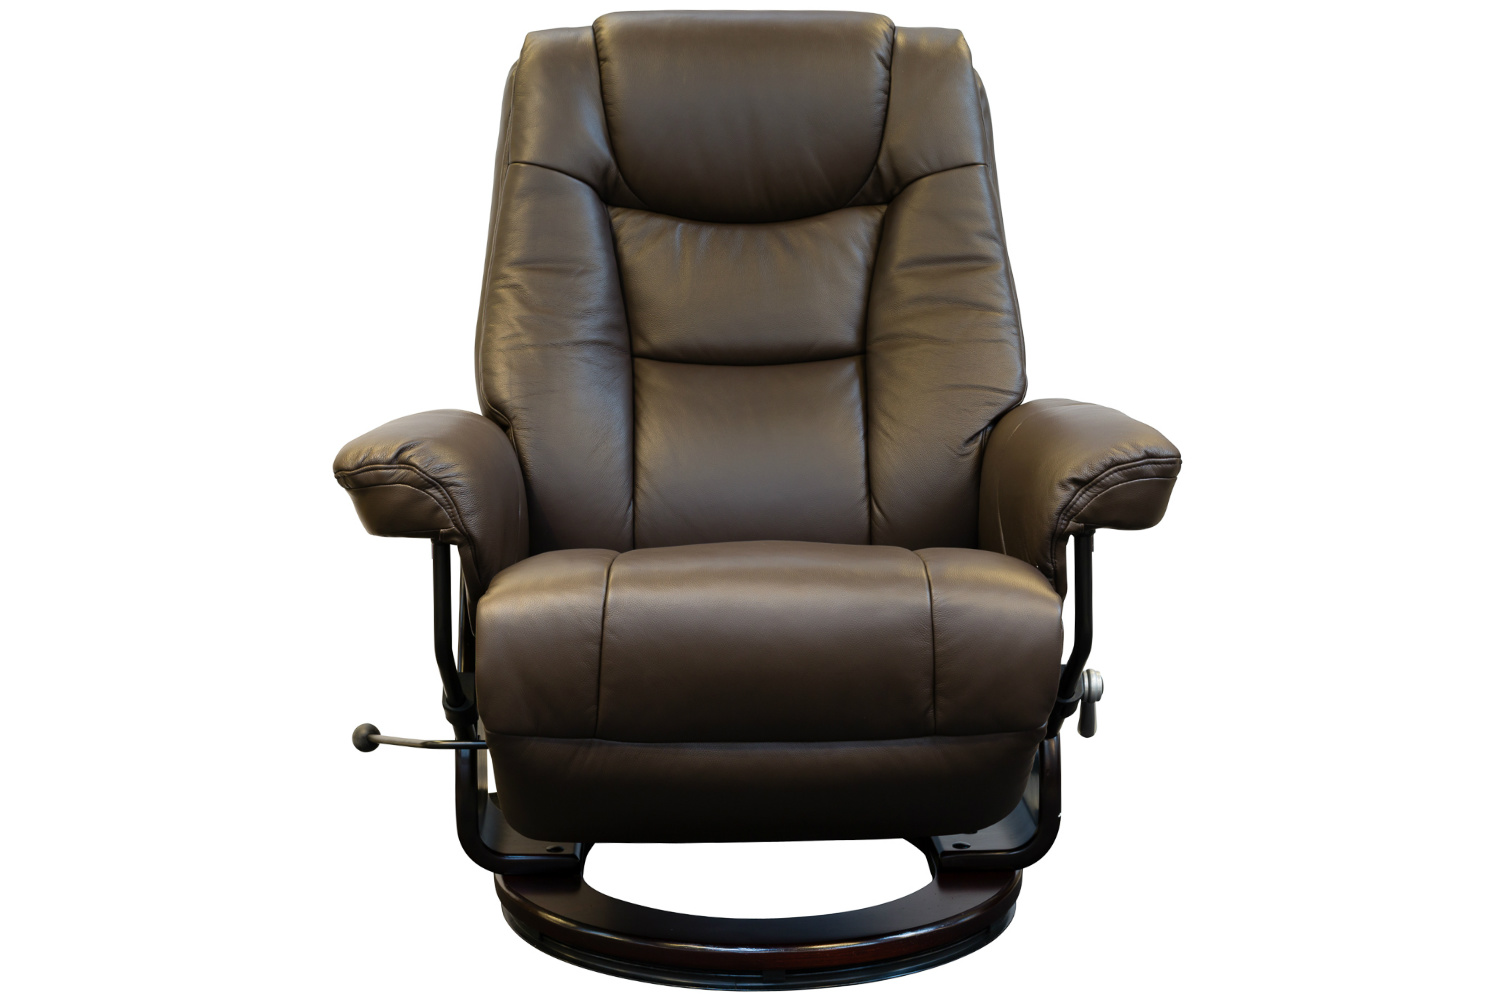 ergonomic chair harvey norman stand up test relax and recline  go